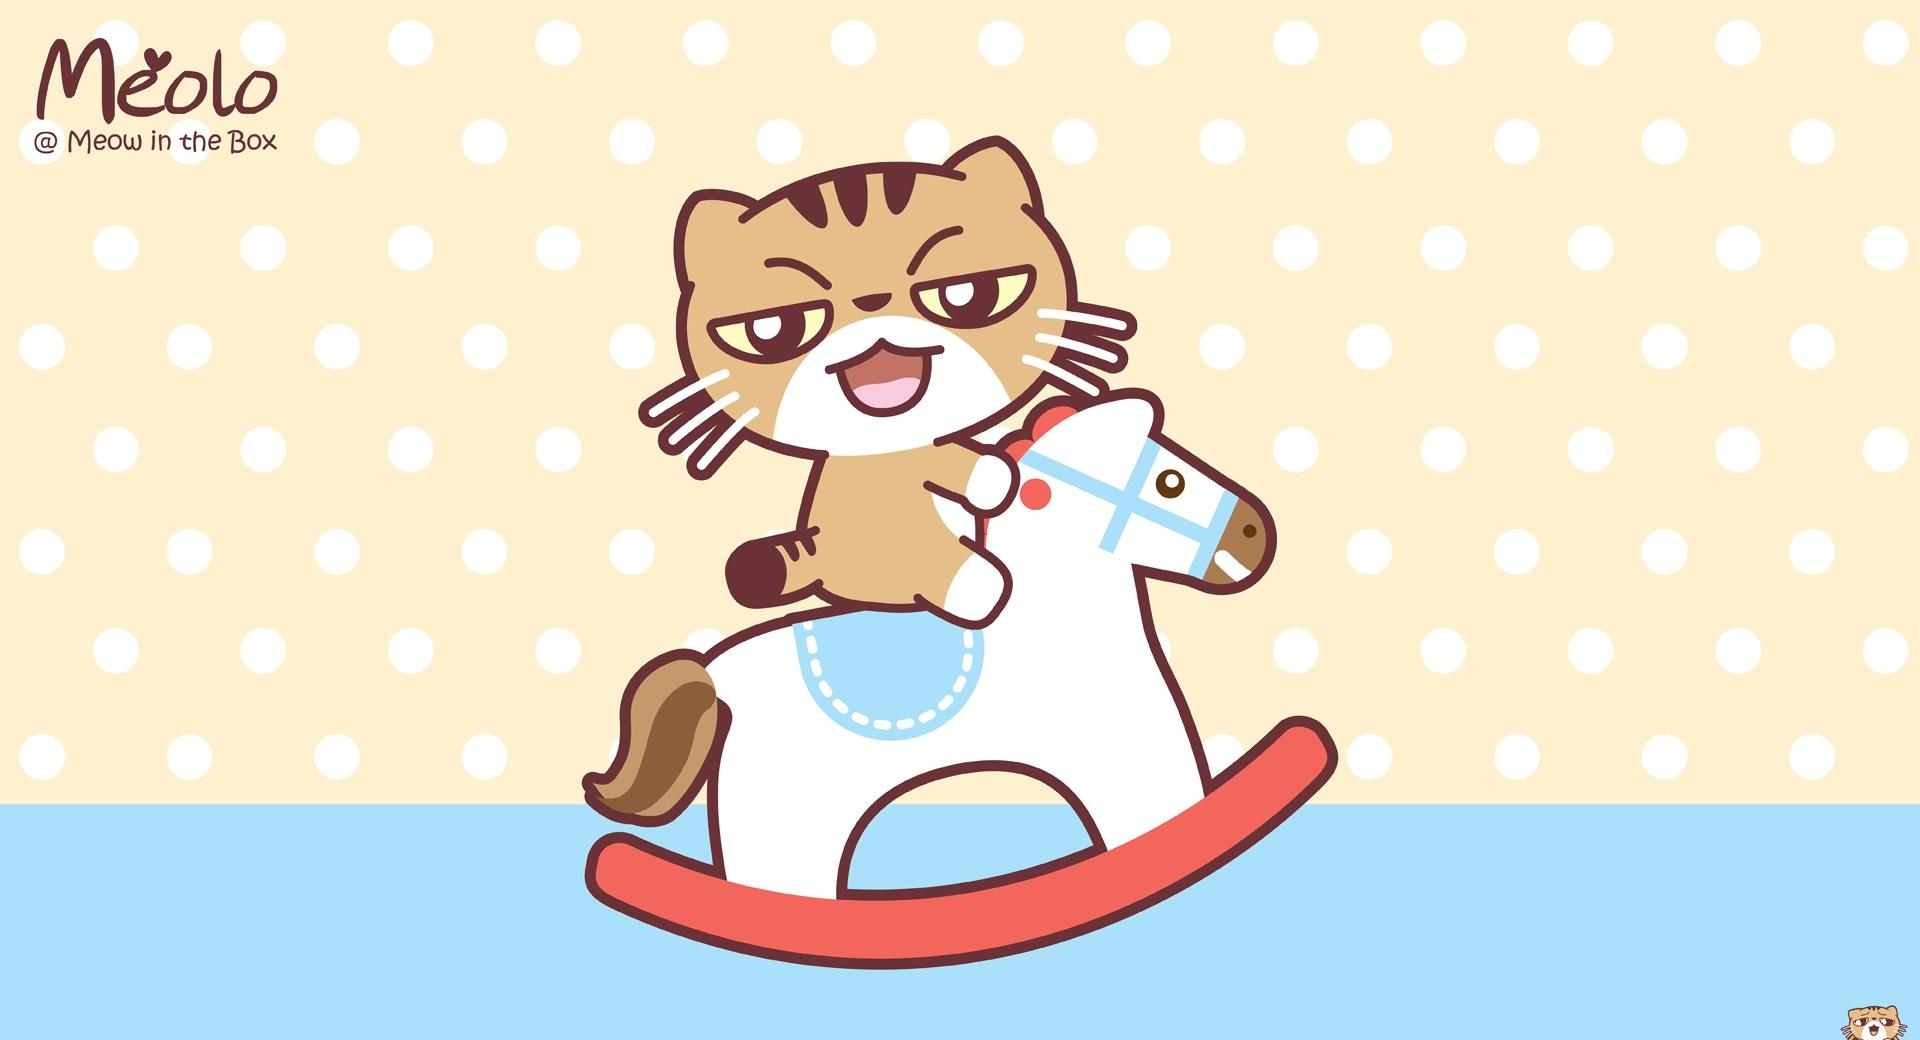 Meolo on Wooden Horse - Meow in the Box wallpapers HD quality